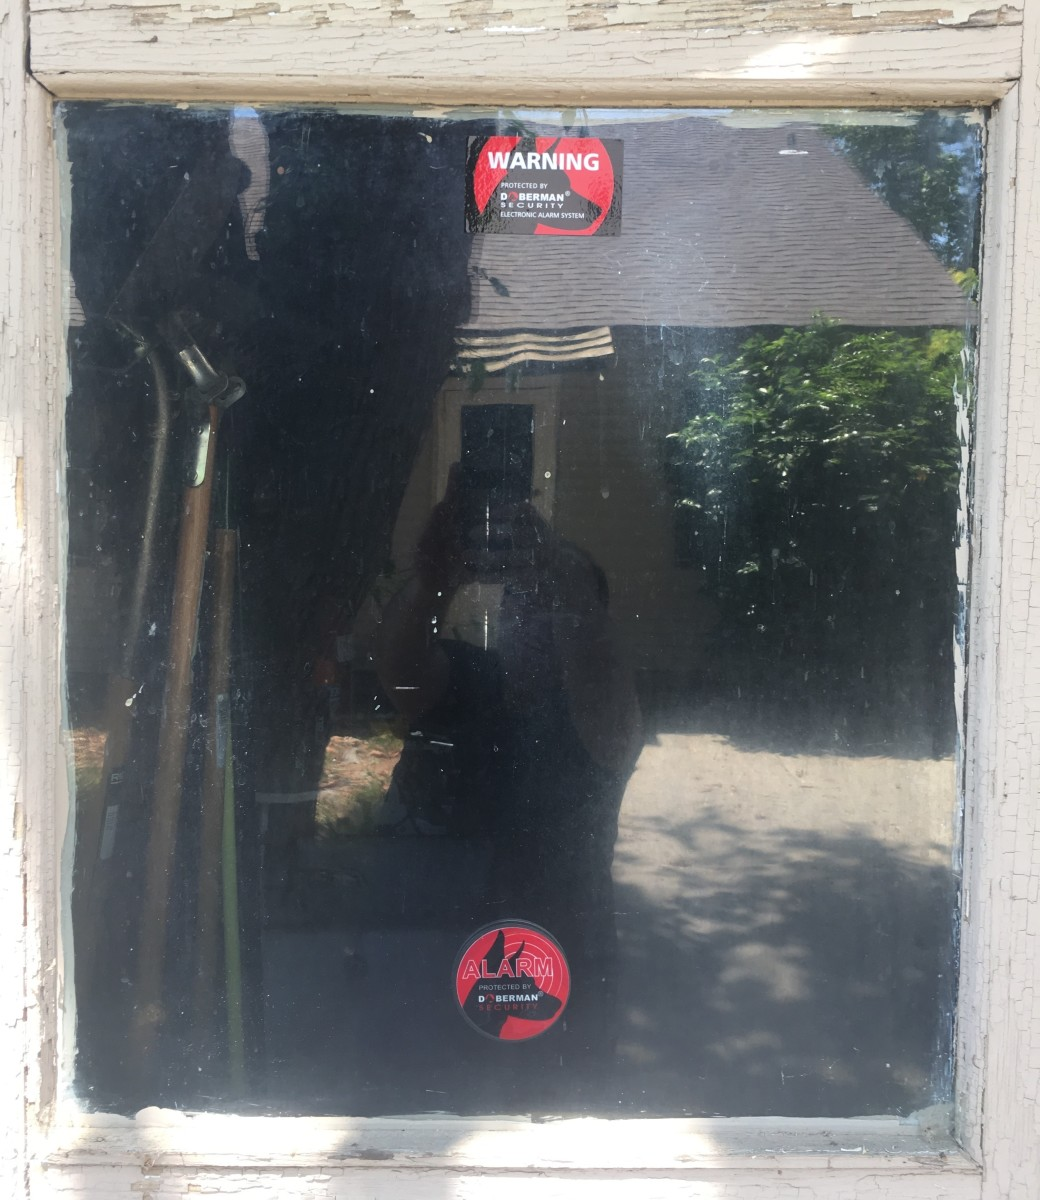 I use a Doberman Security alarm and sticker on my garage door since the garage is detached from my house.